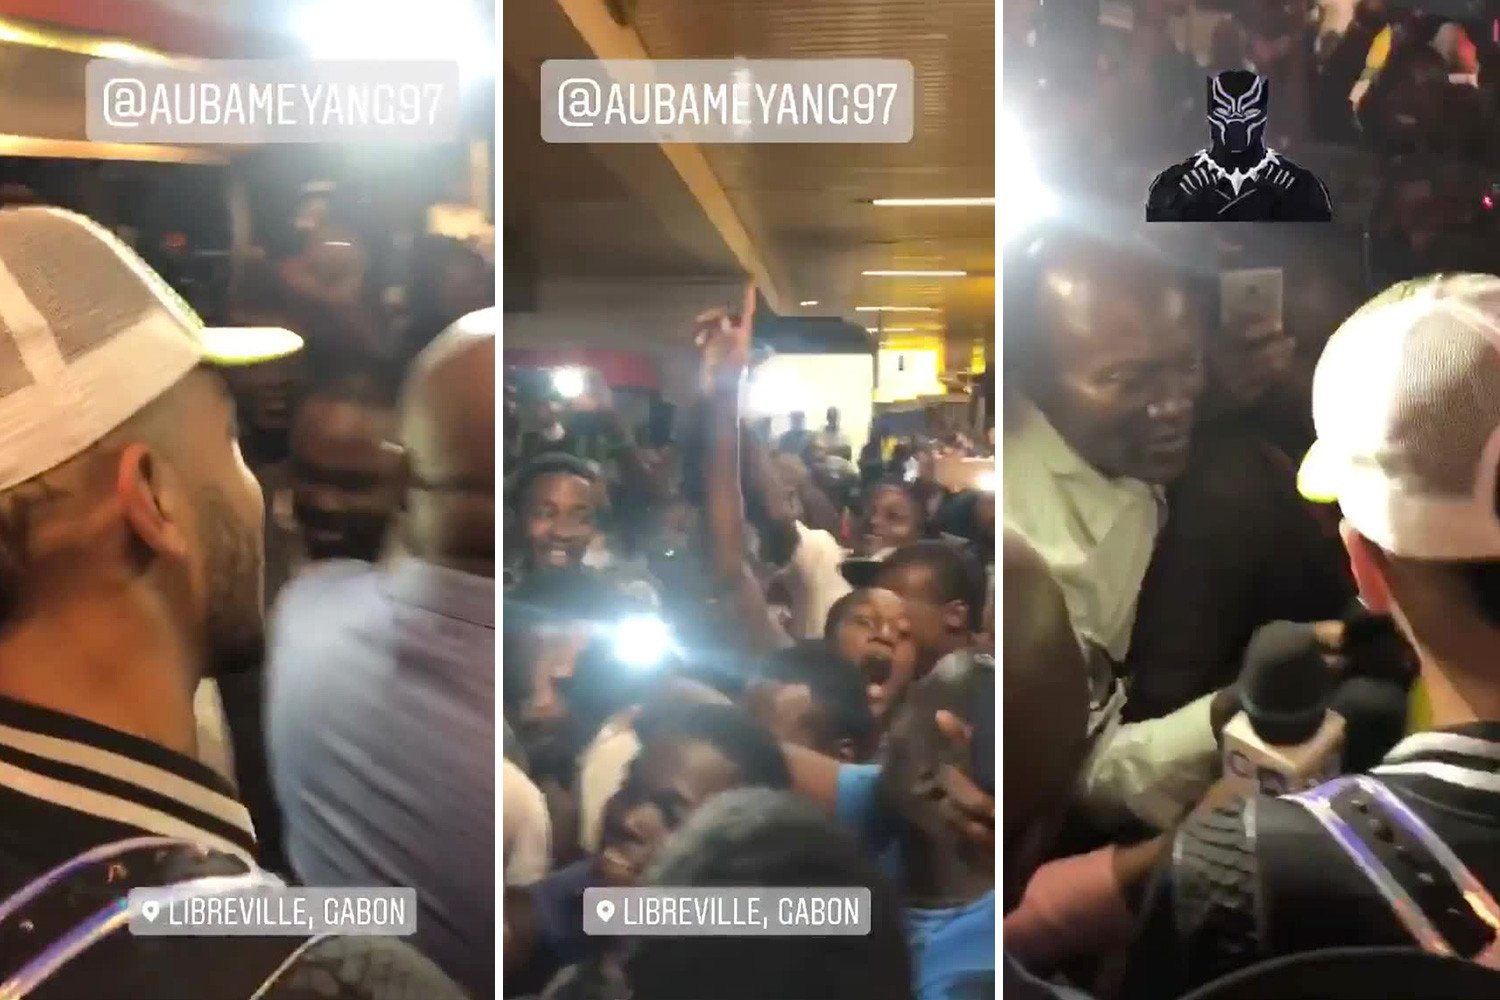 Aubameyang mobbed by huge crowd at airport as Arsenal star flies out for international duty with Gabon amid retirement talk